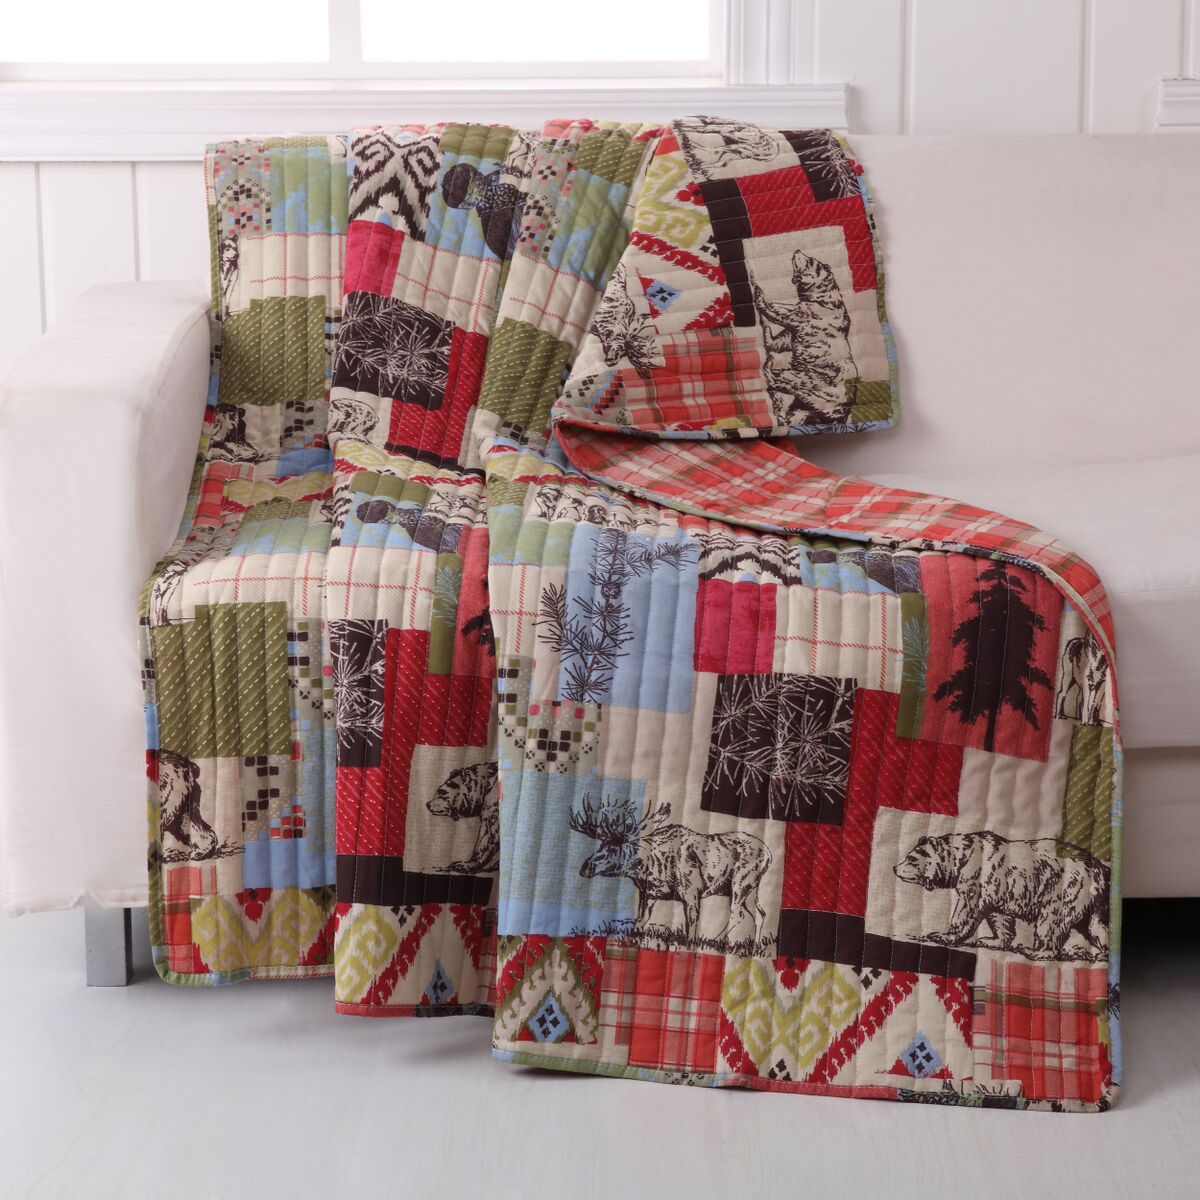 Rustic Lodge Multi Accessory Throw